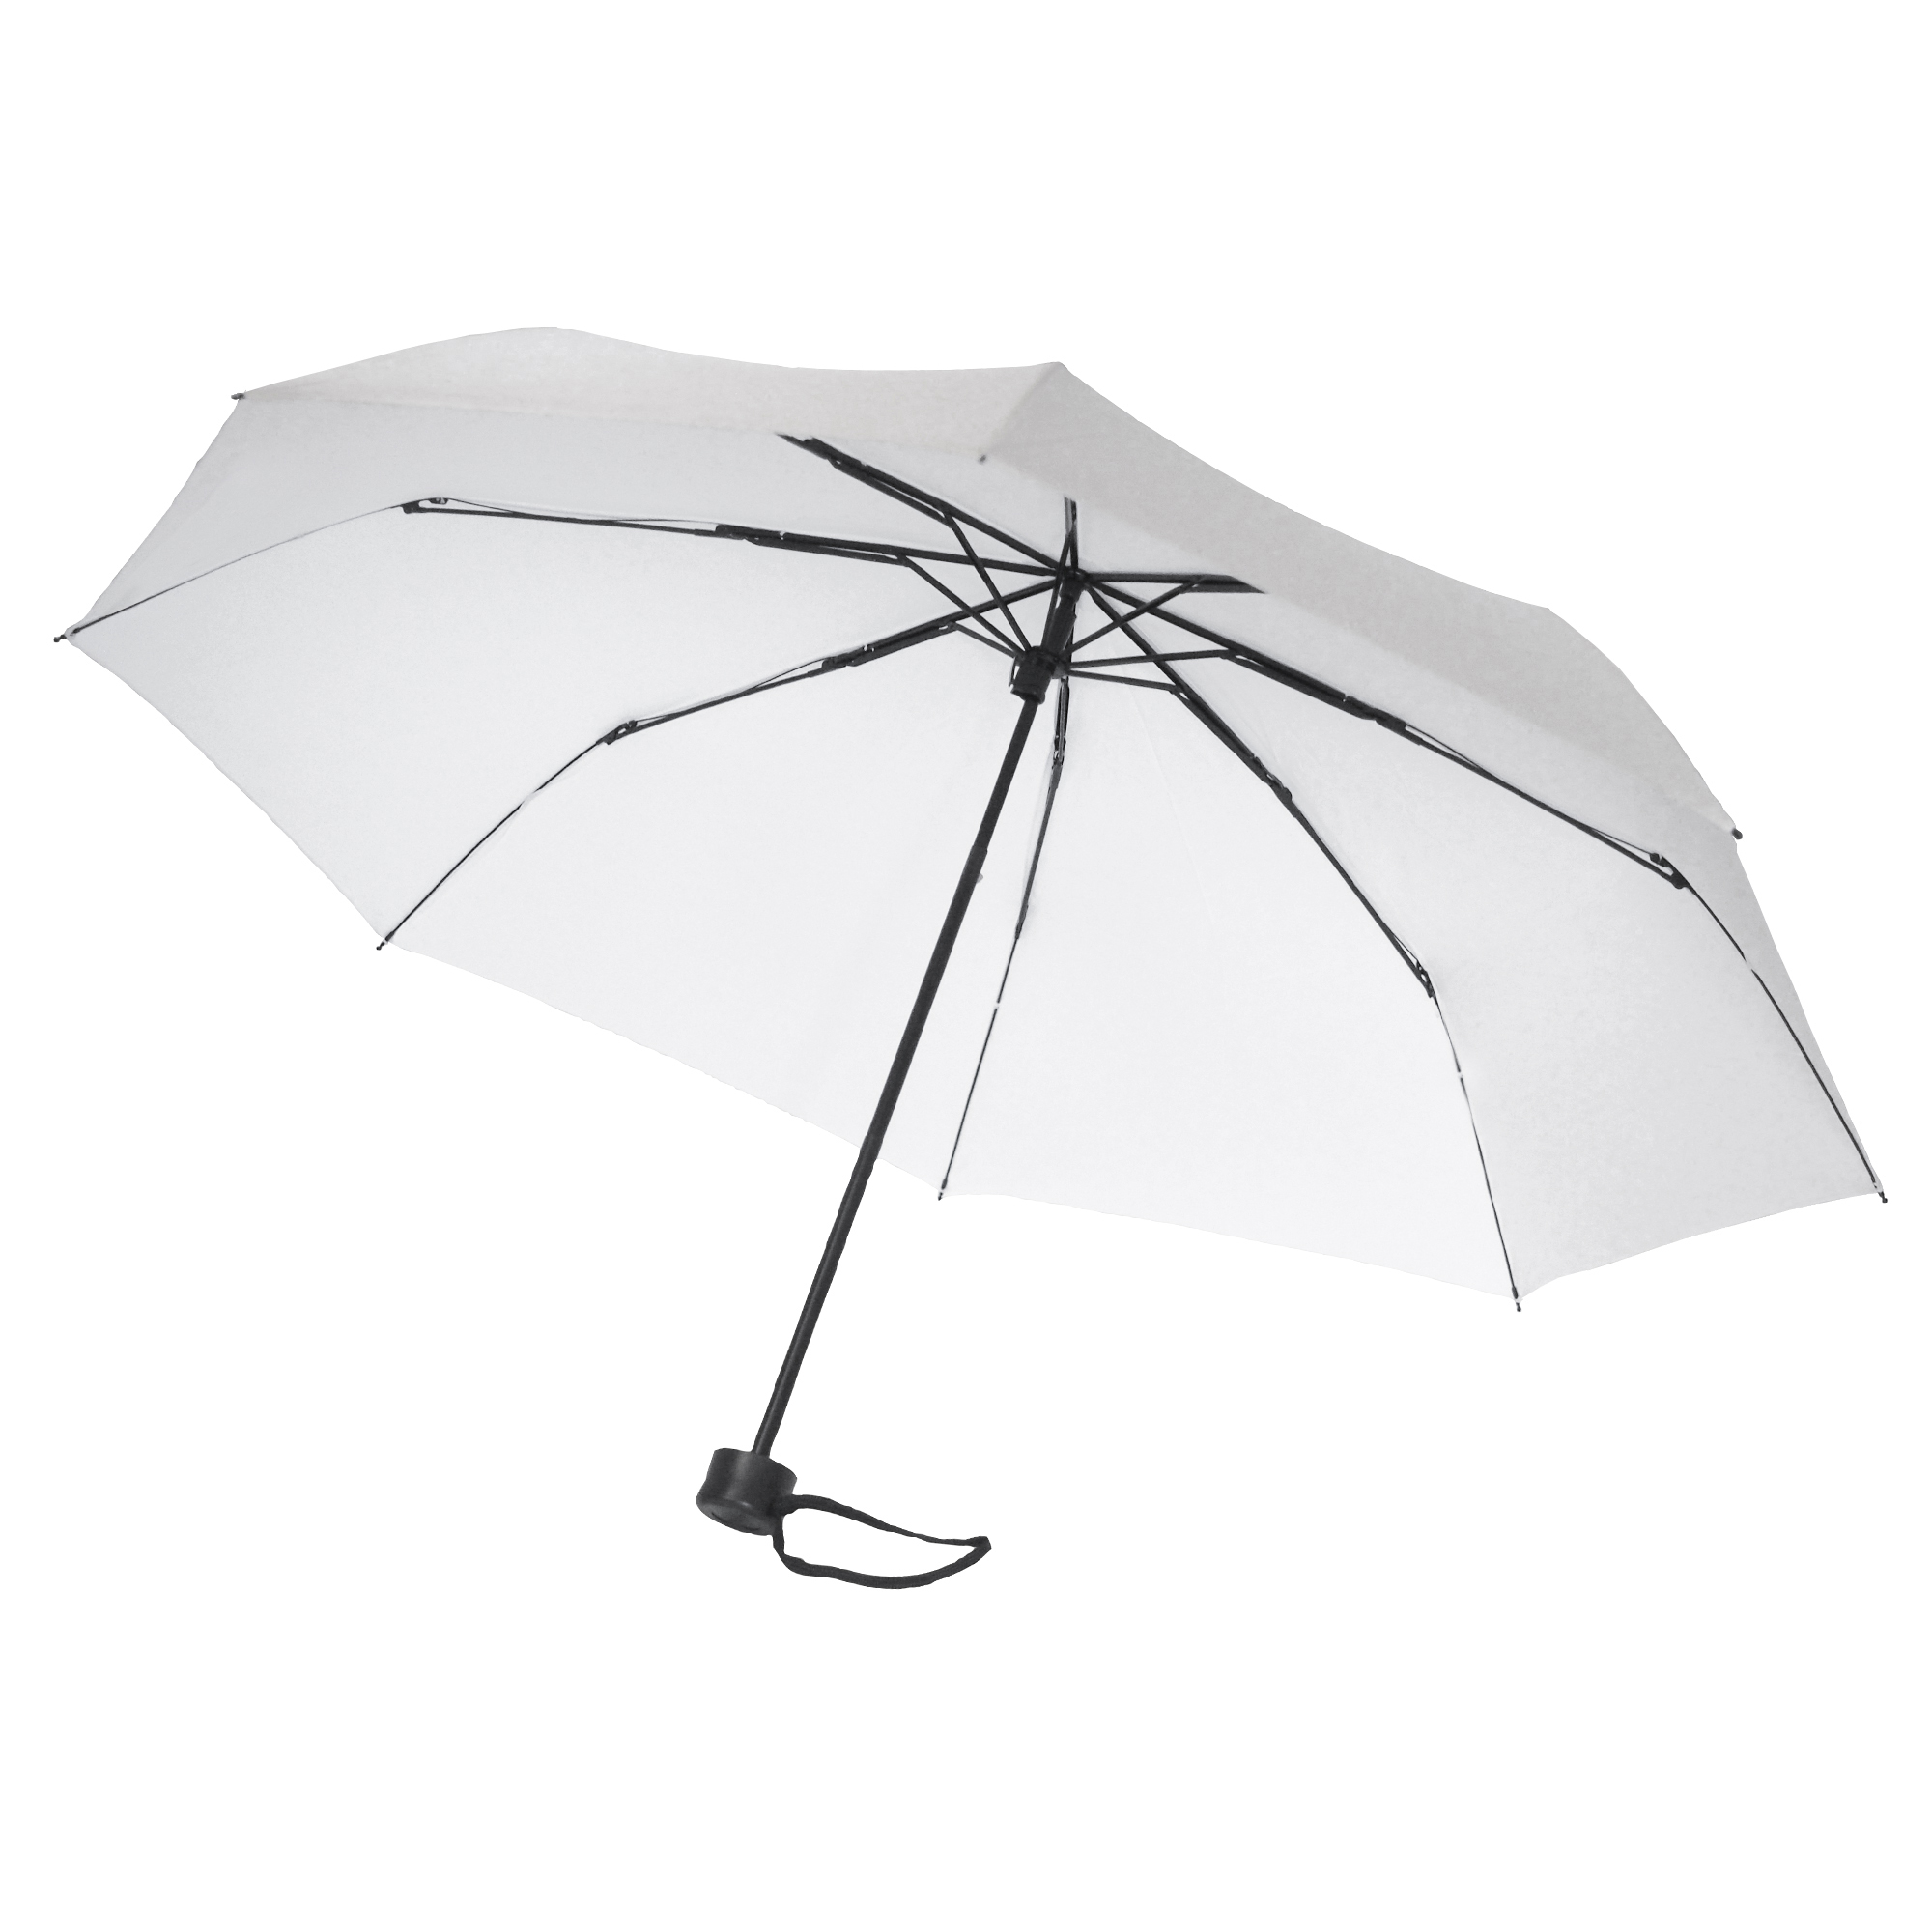 Telescopic umbrella SKY